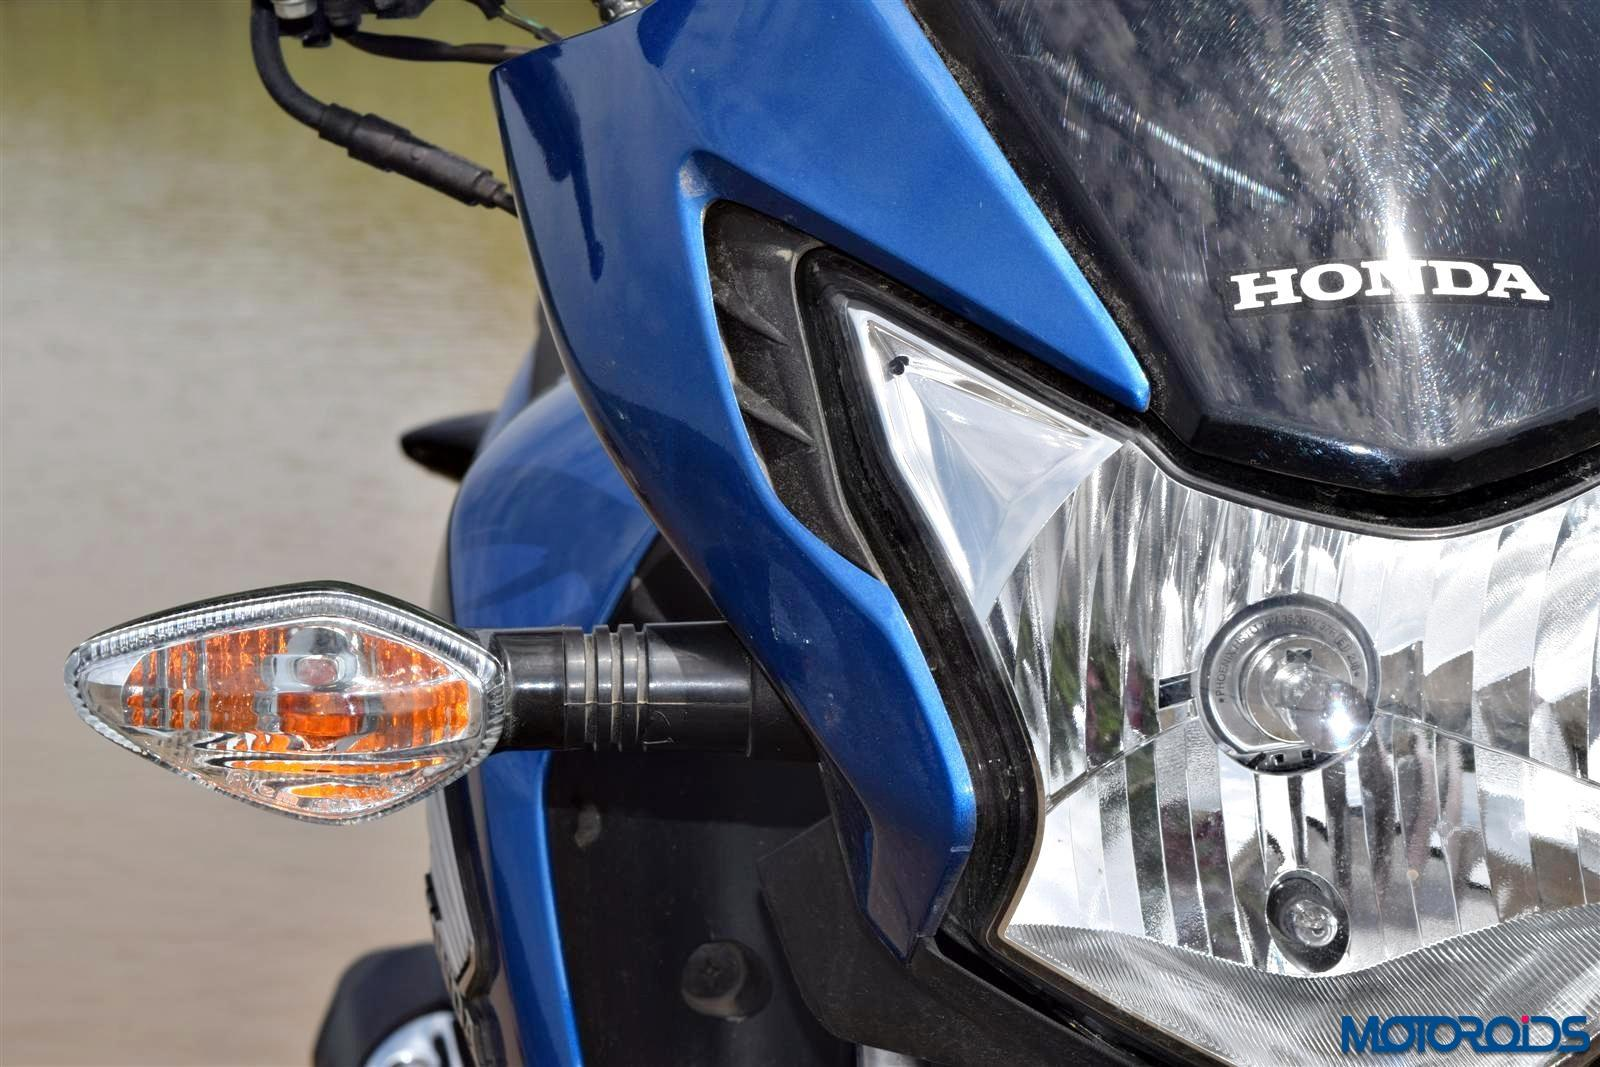 Honda Livo 110 India review : Prudent Panache | Motoroids